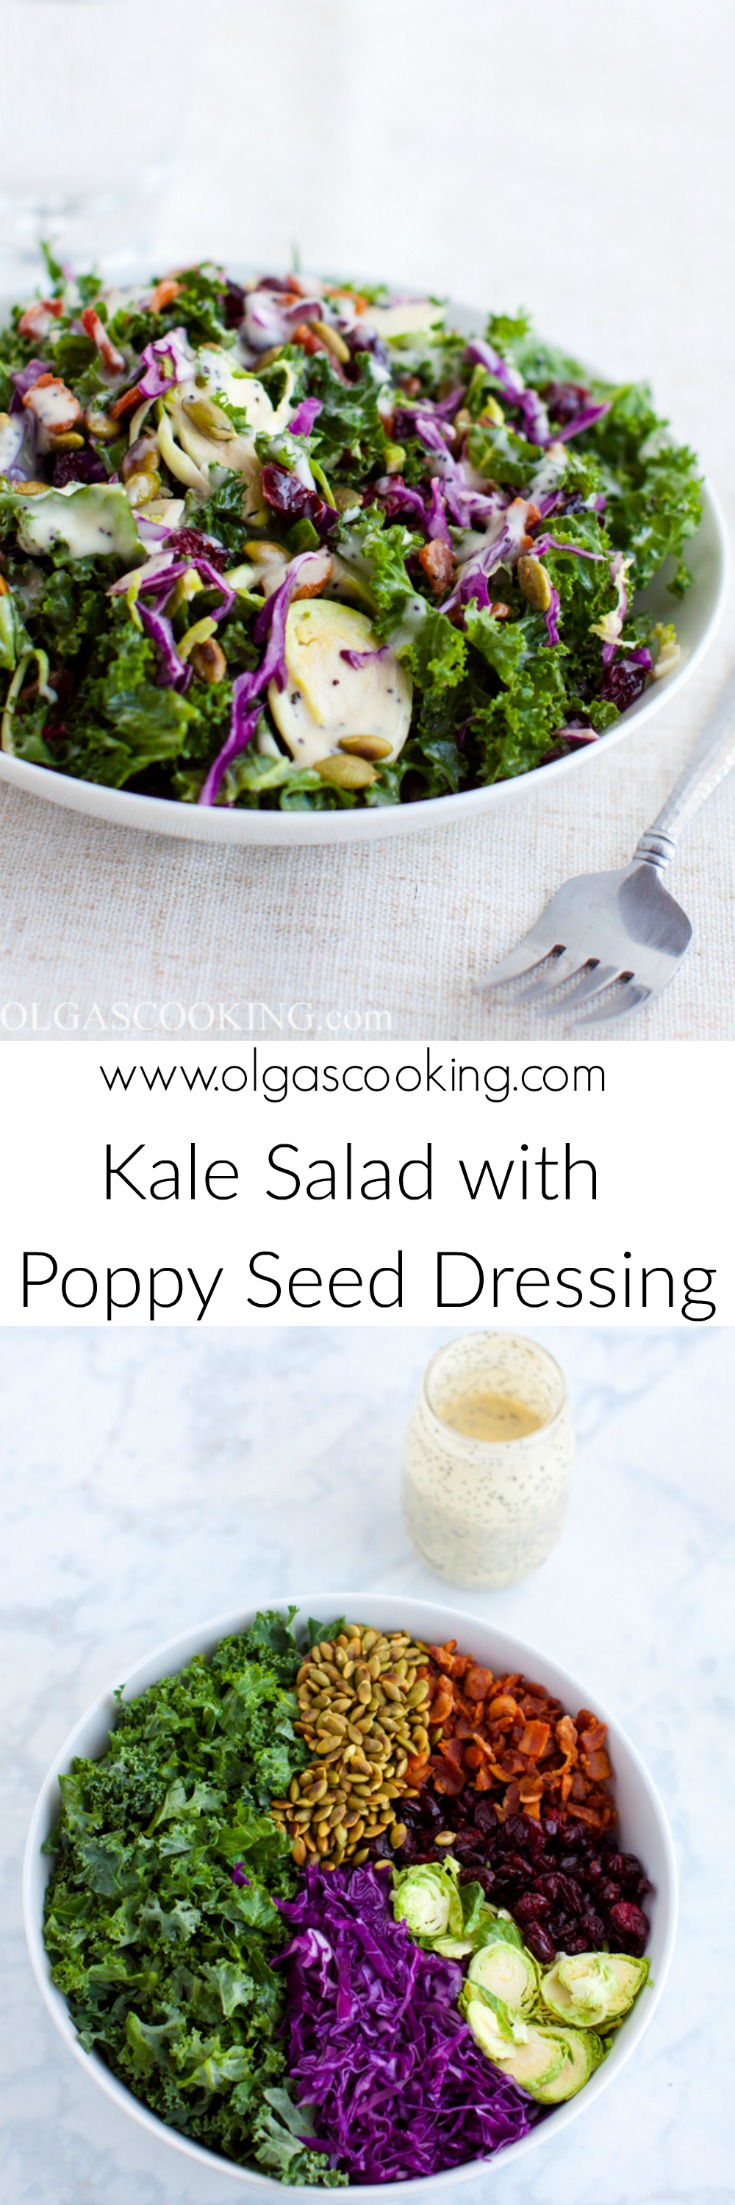 kale-salad-with-poppy-seed-dressing